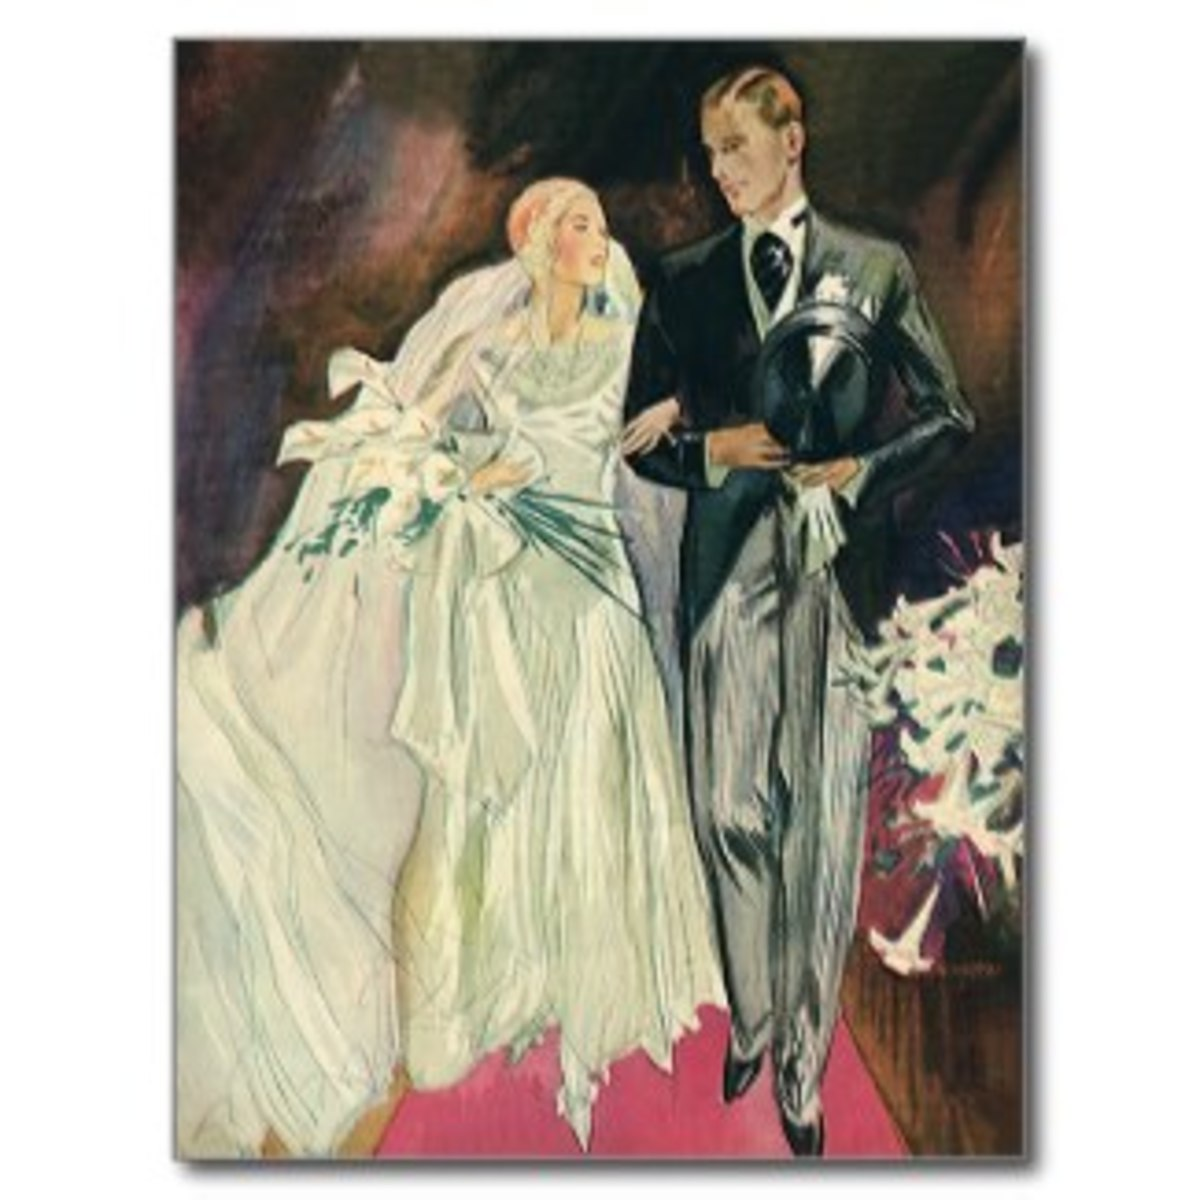 Vintage Wedding, Bride and Groom, Newlyweds Postcard